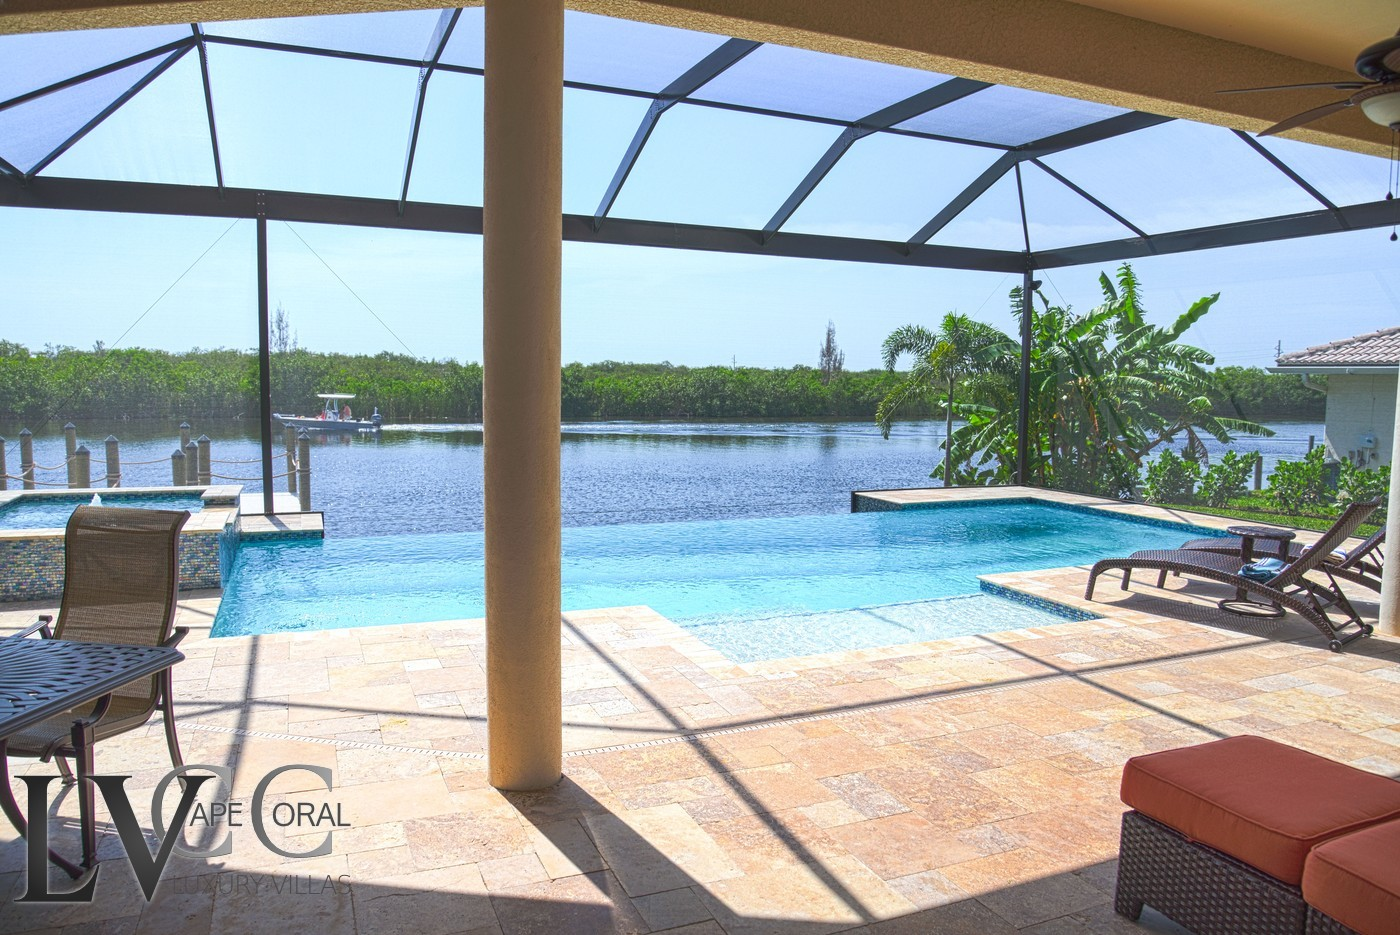 Luxus villen cape coral ft myers florida villa overview for Pool lanai cost